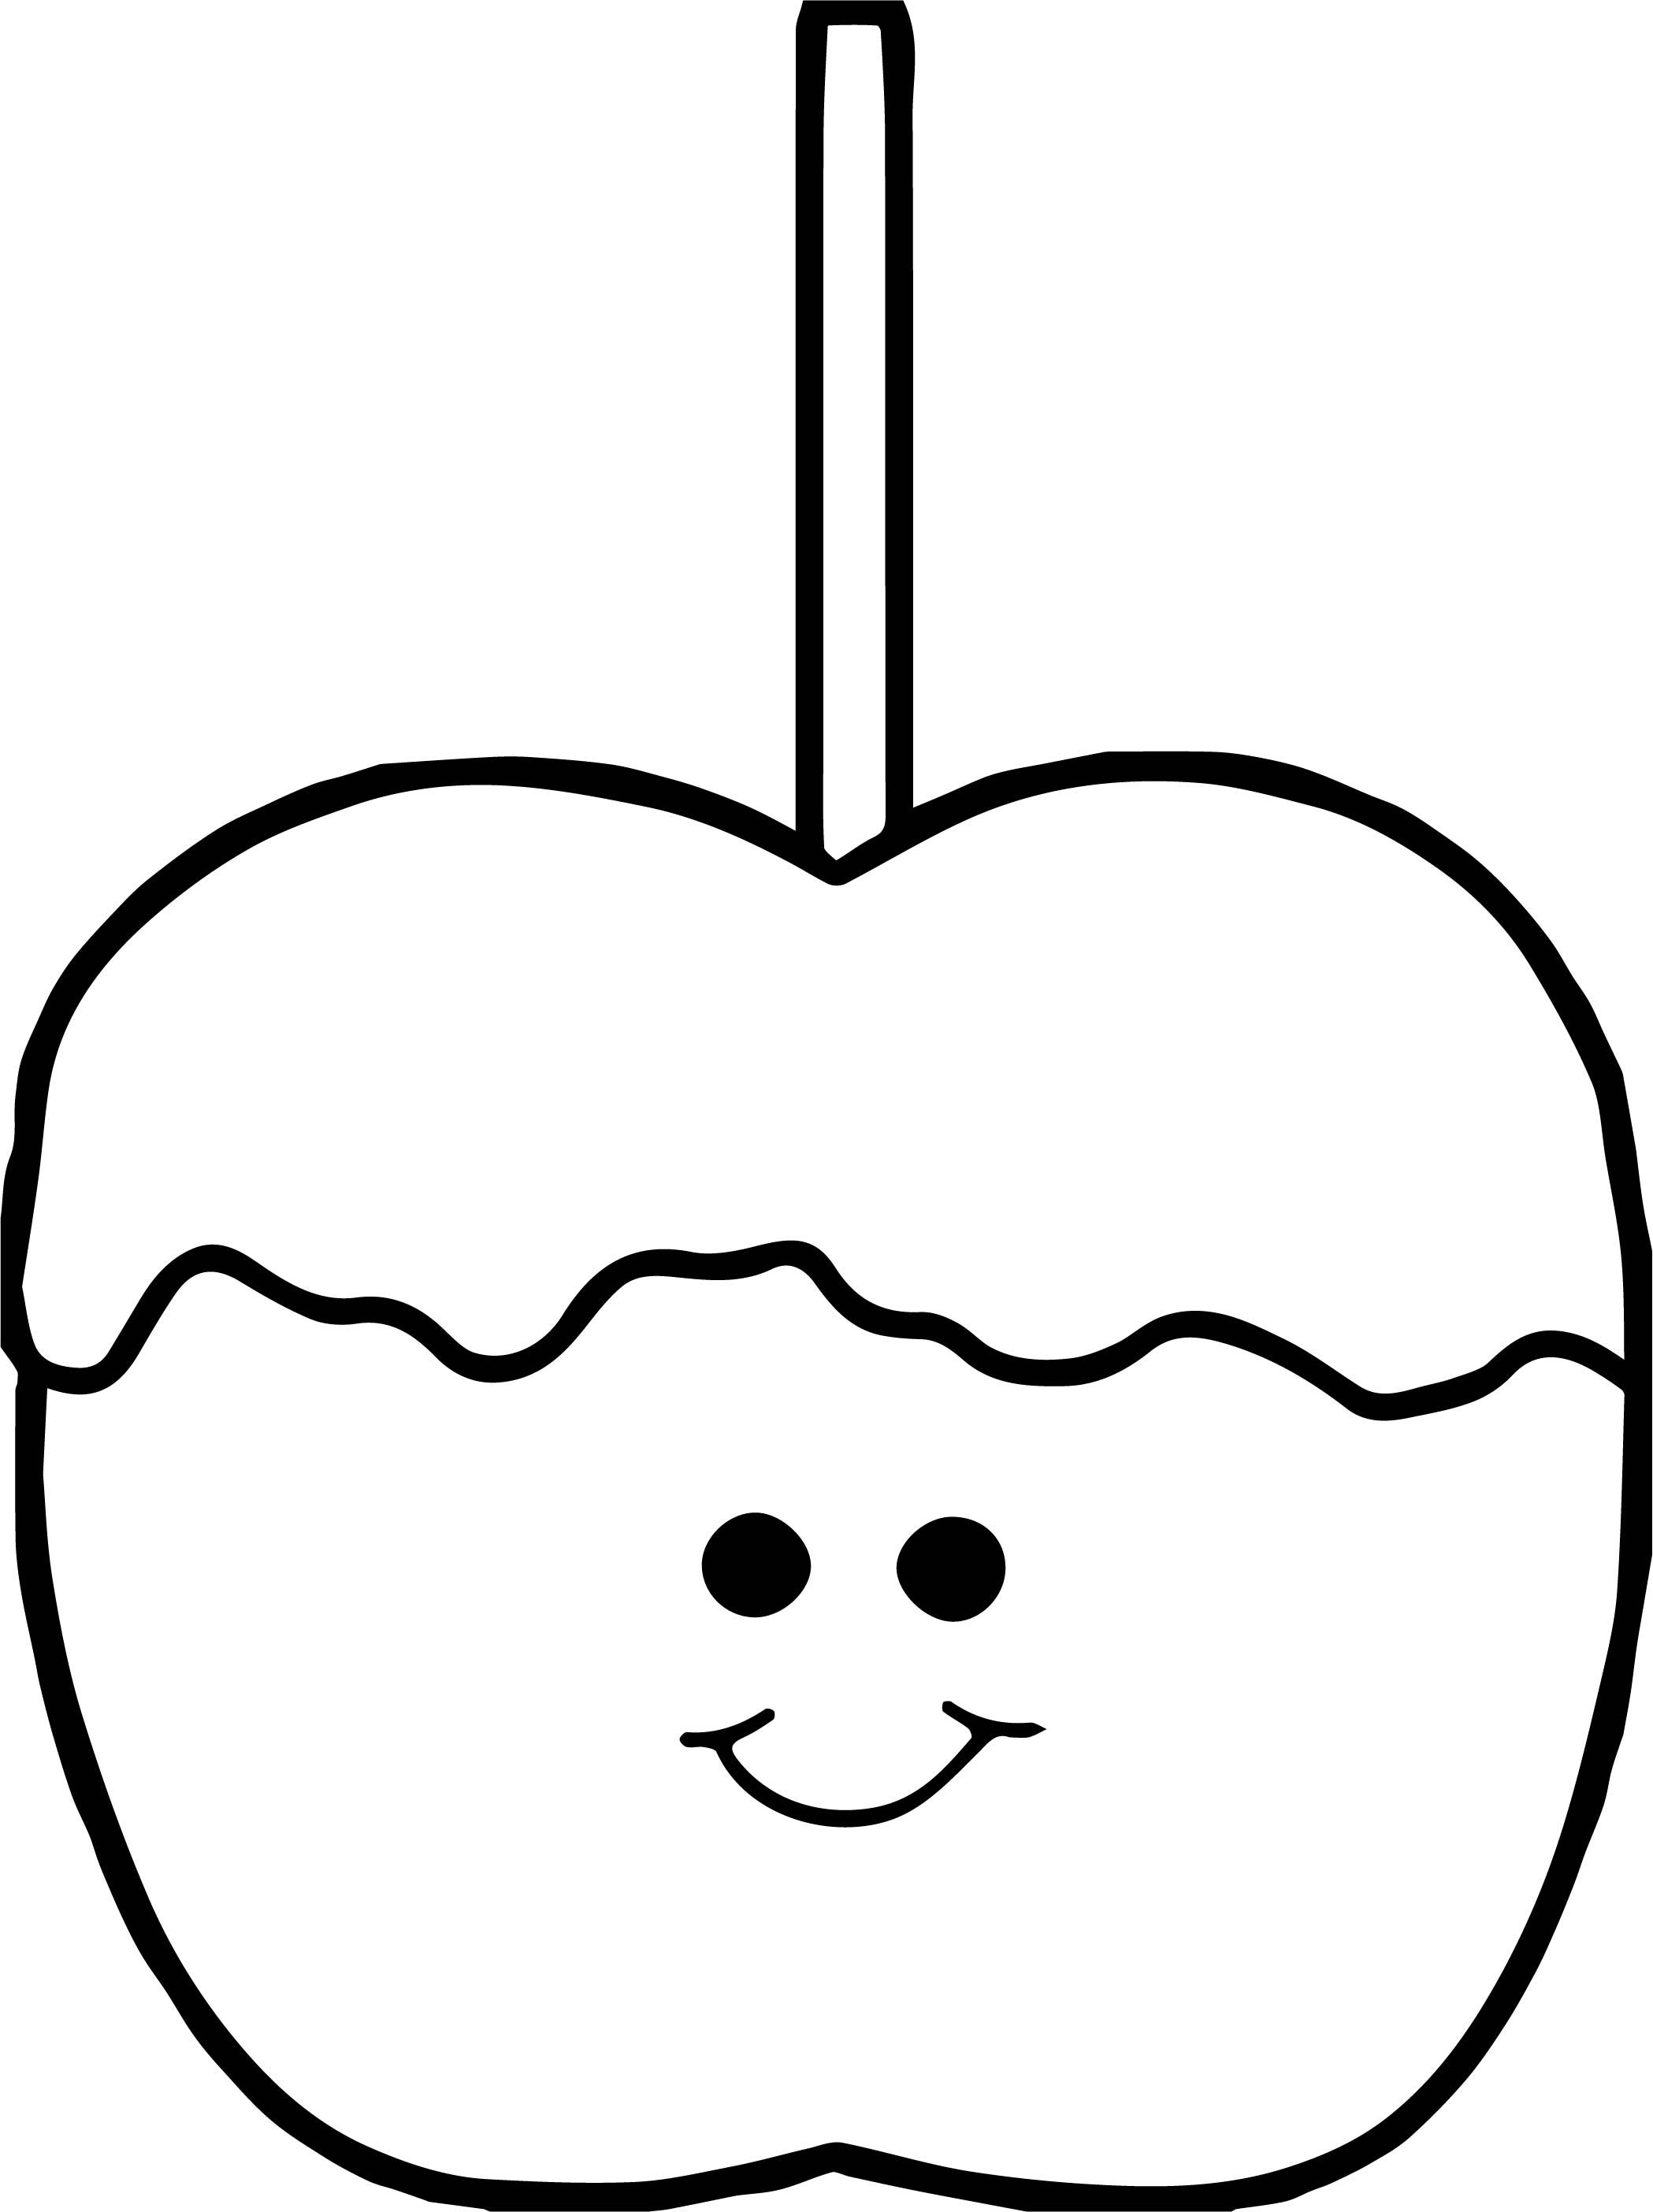 Colouring Pages Apple